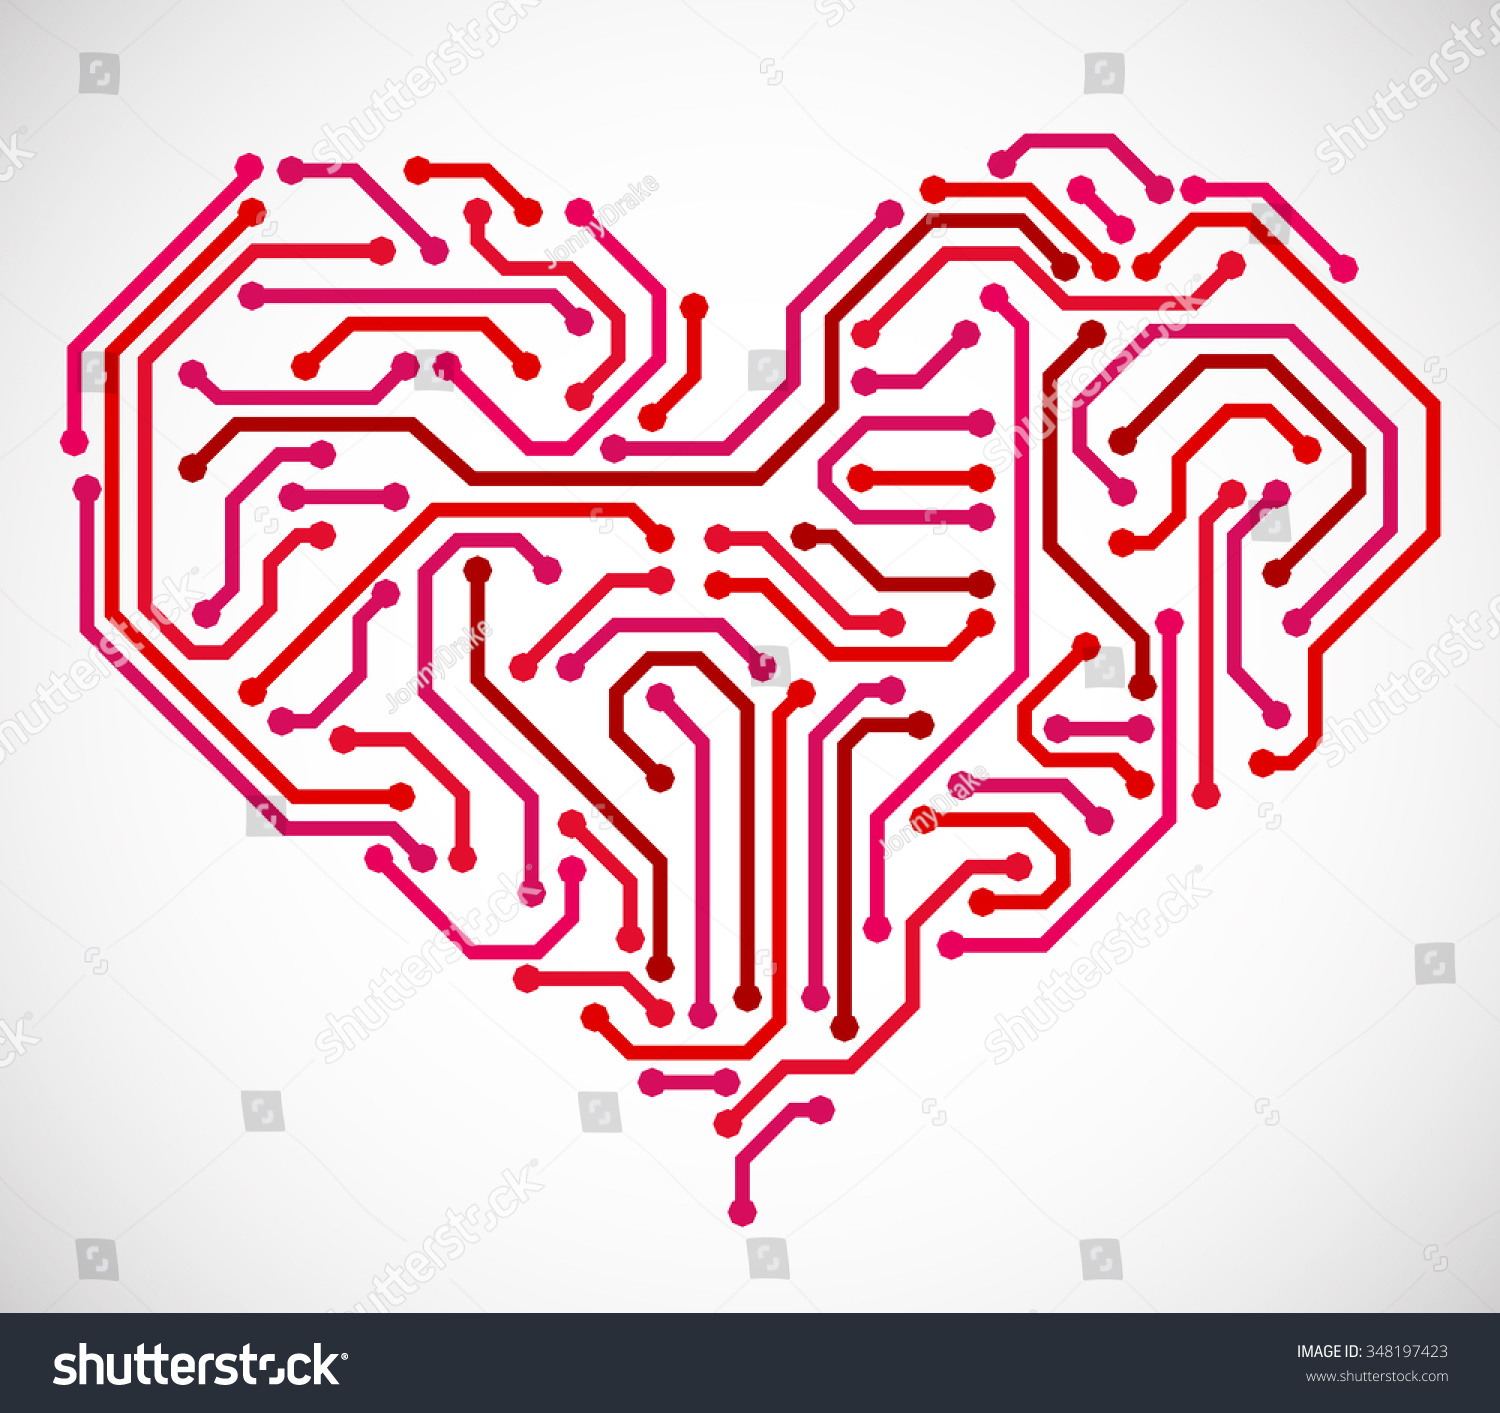 Heart Made Printed Circuit Board Stock Vector Royalty Free Designing A And Getting It From